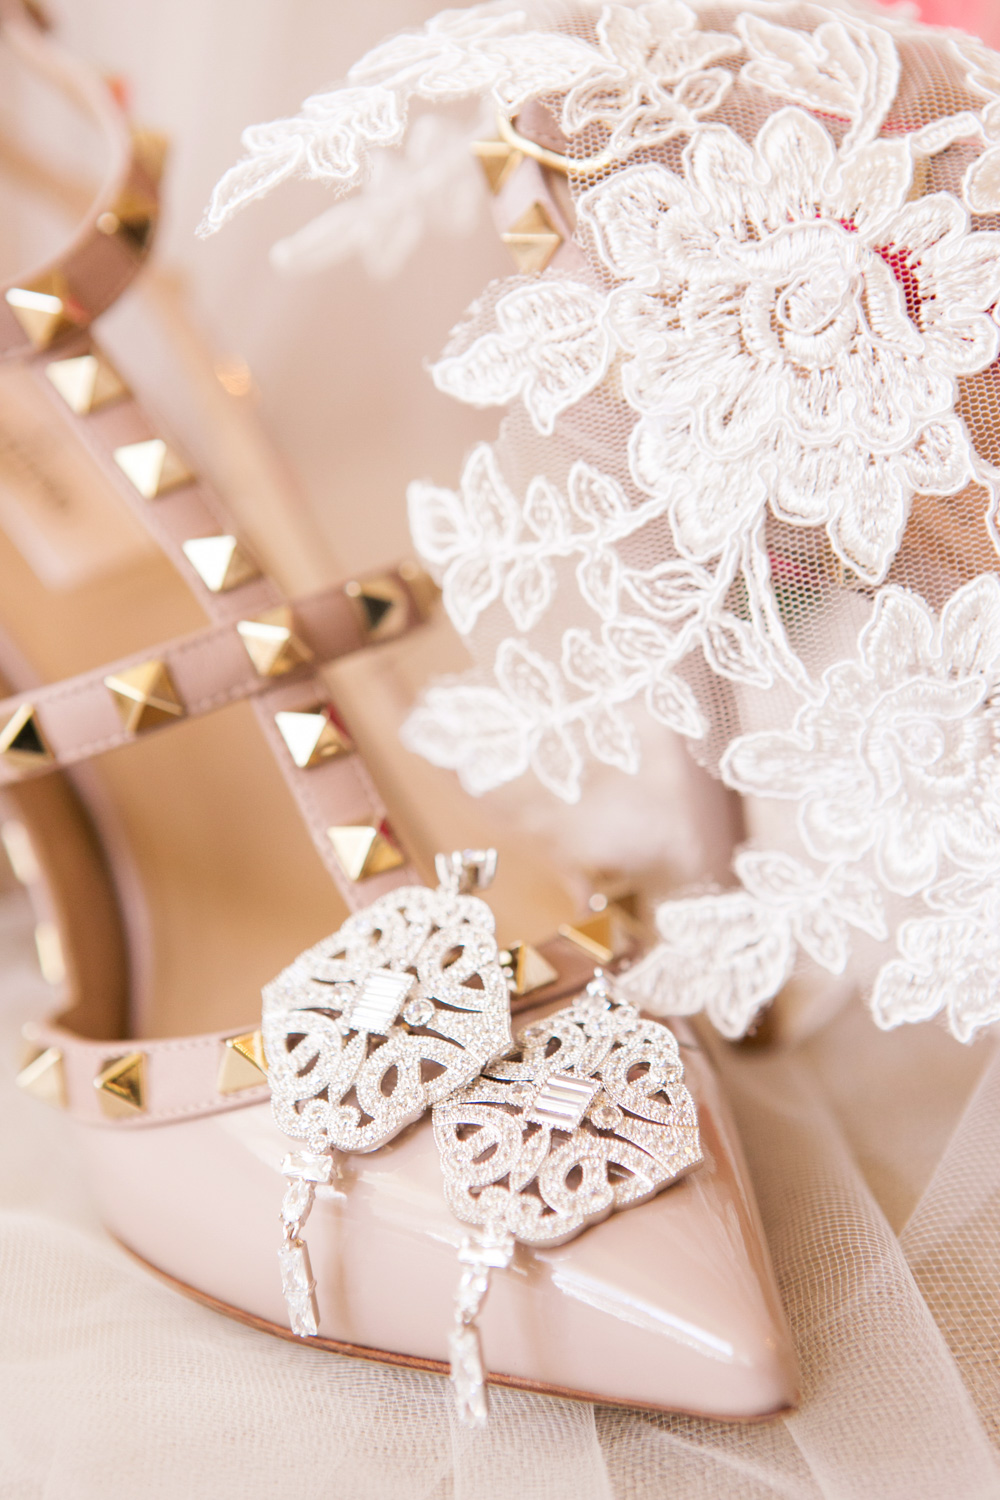 wedding-0434-valentino-shoes-earrings-lace-bridal-queensland.jpg